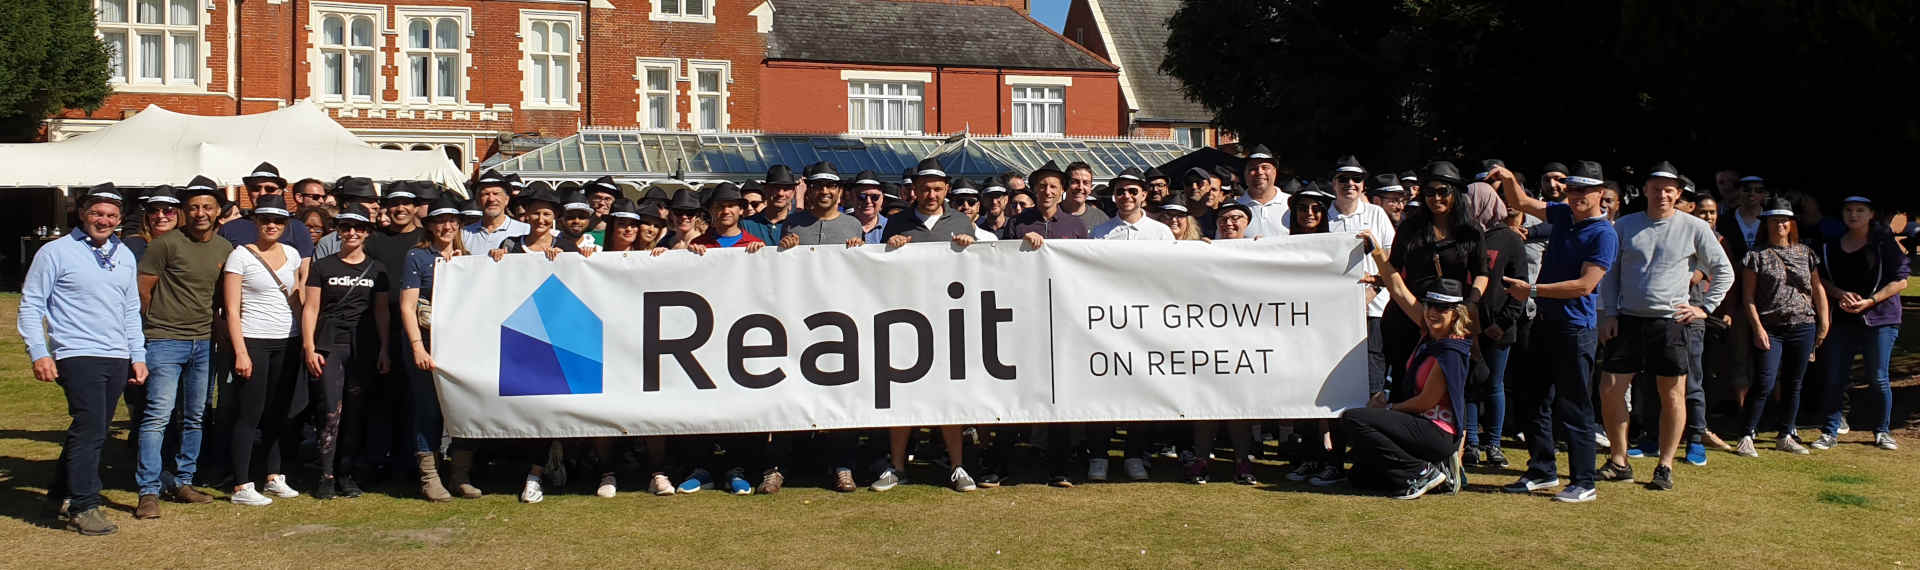 Reapit-Team-Summer-Conference